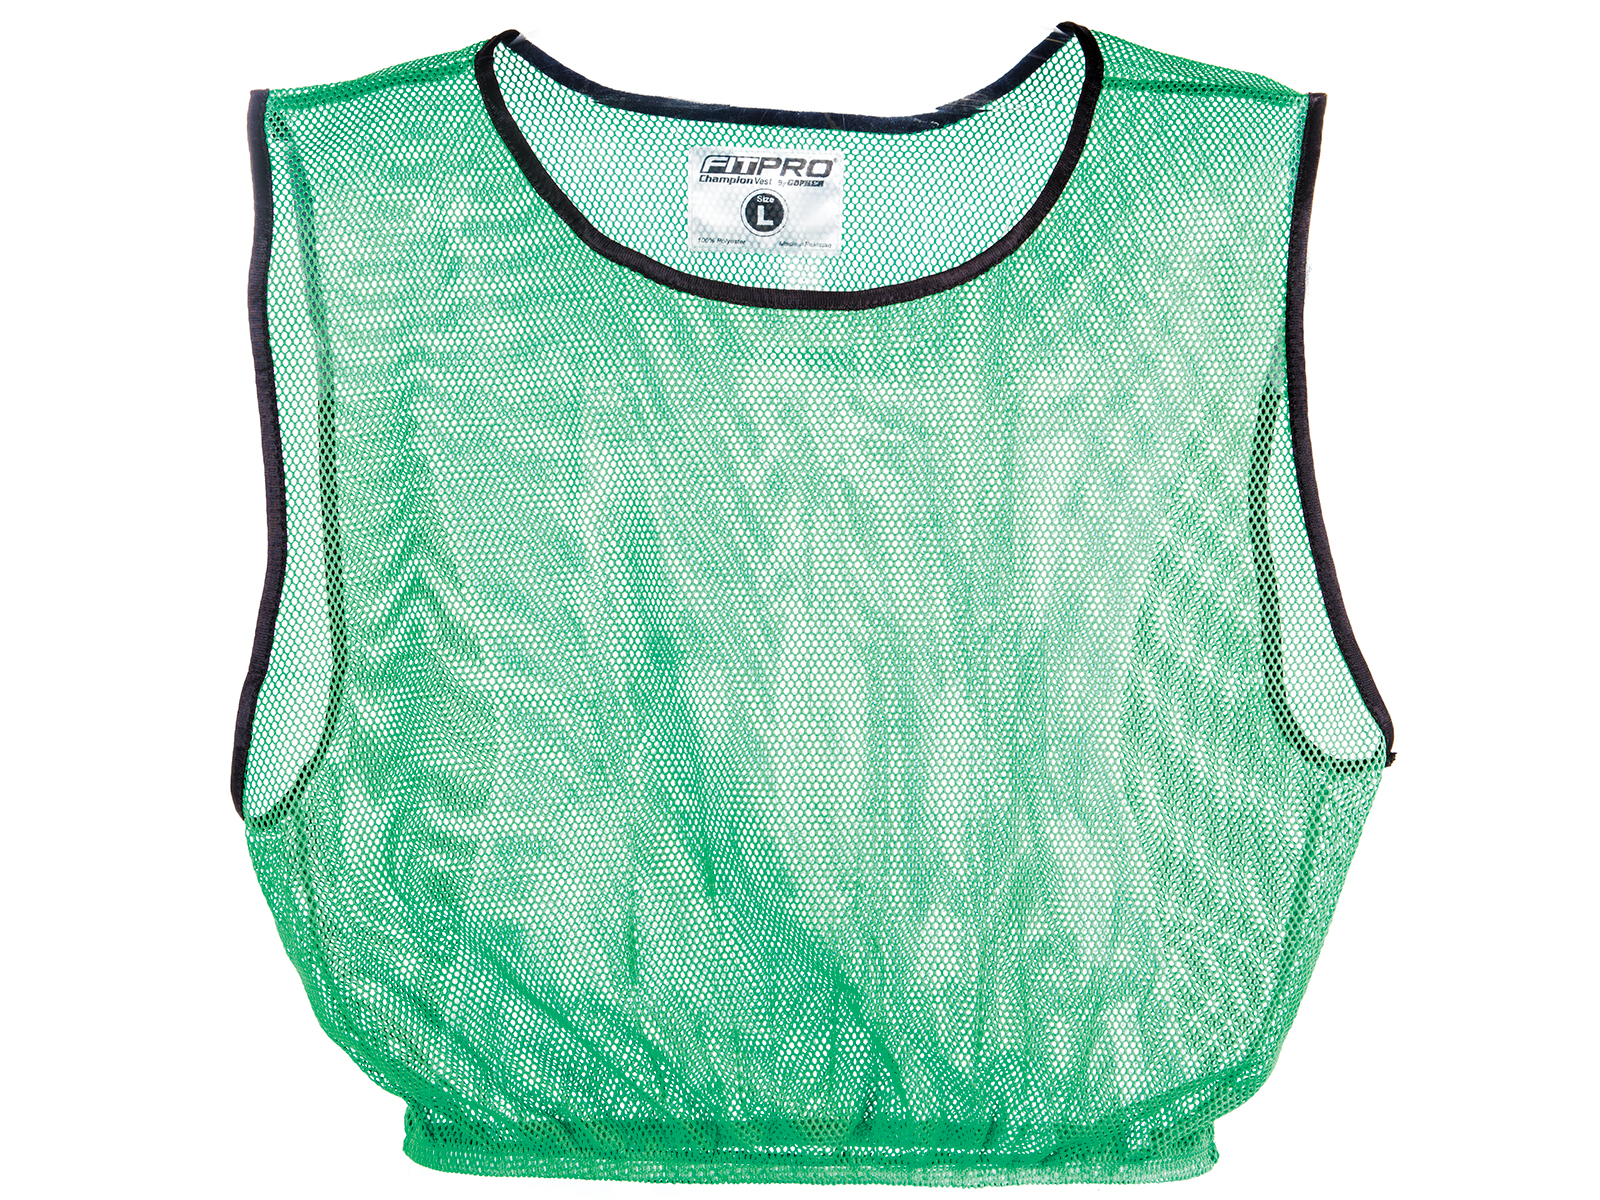 Green mesh polyester pinnie vest